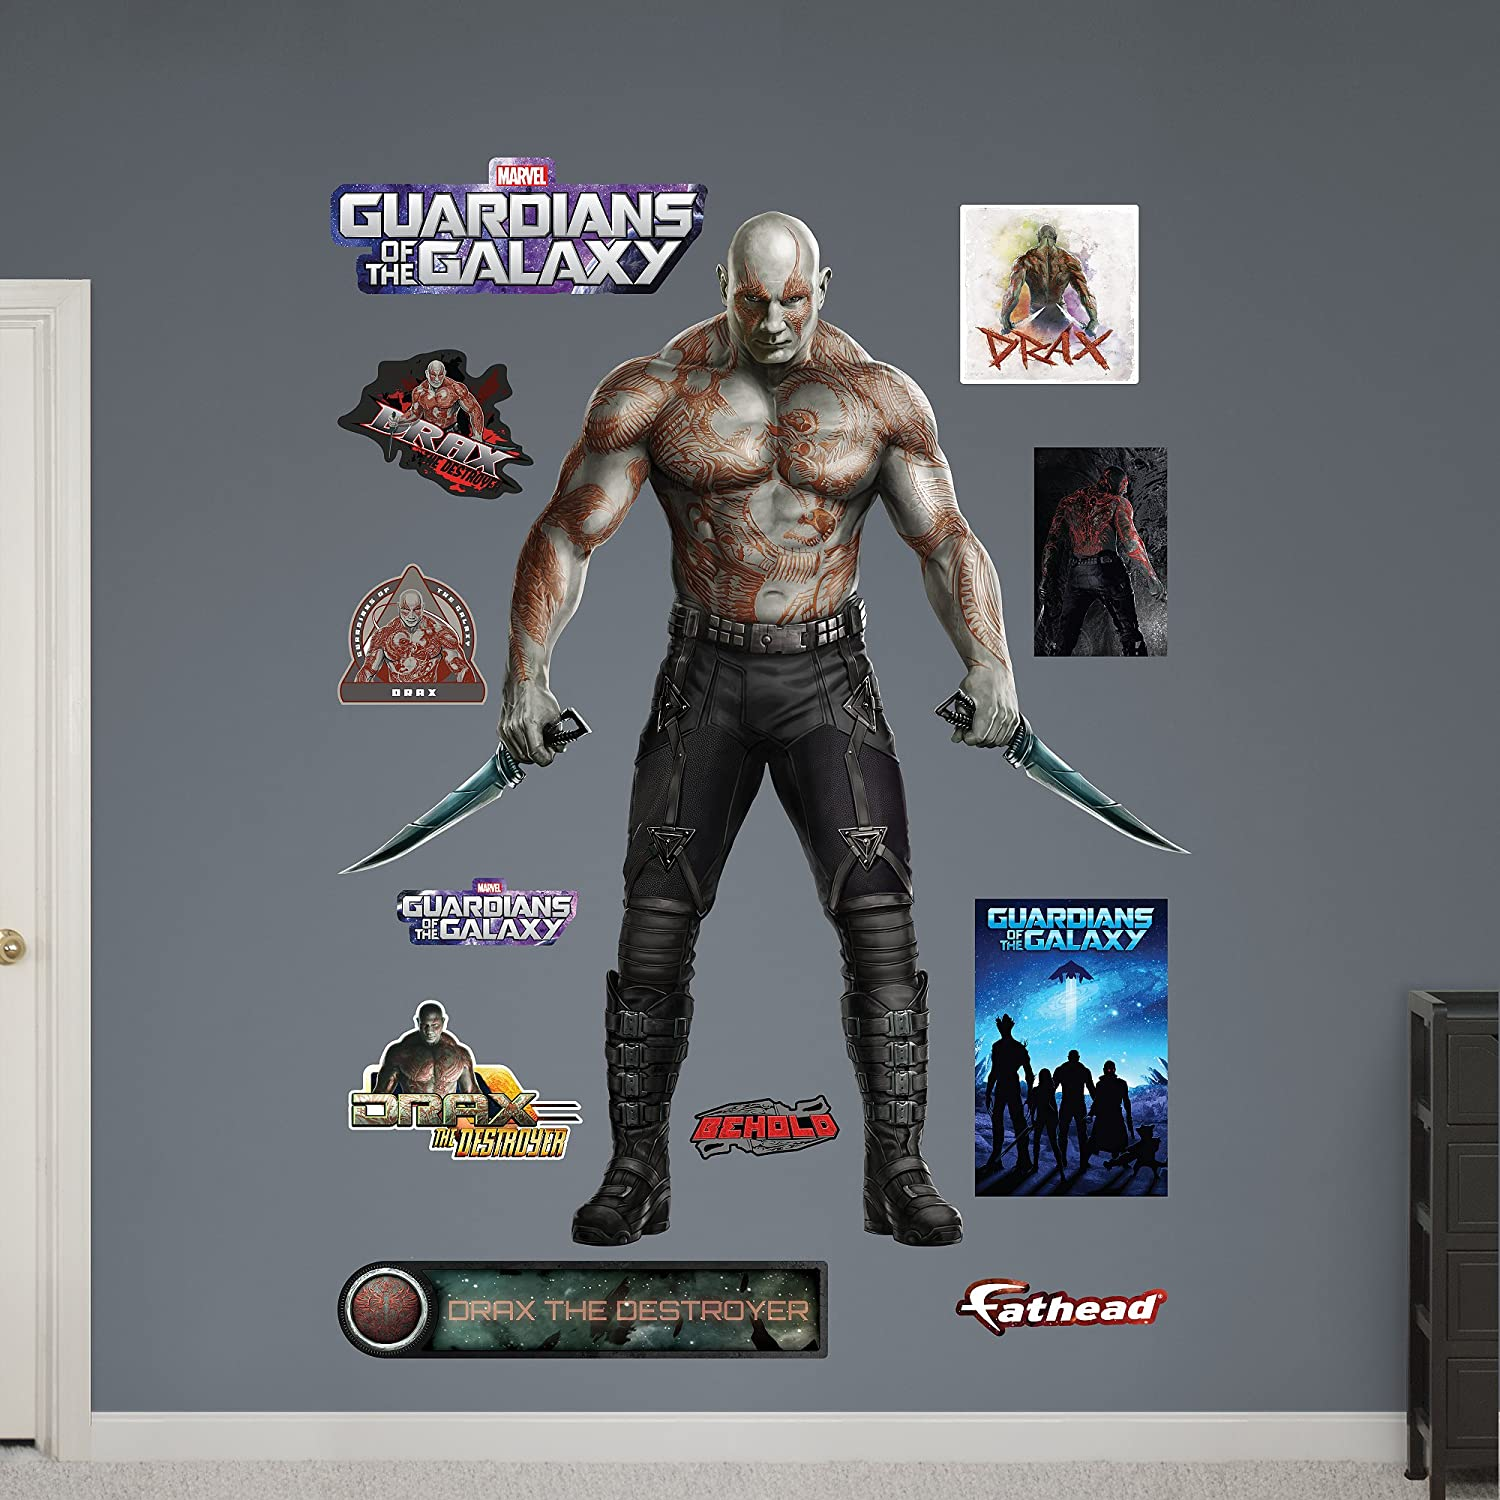 FATHEAD Drax The Destroyer Guardians of The Galaxy Decal